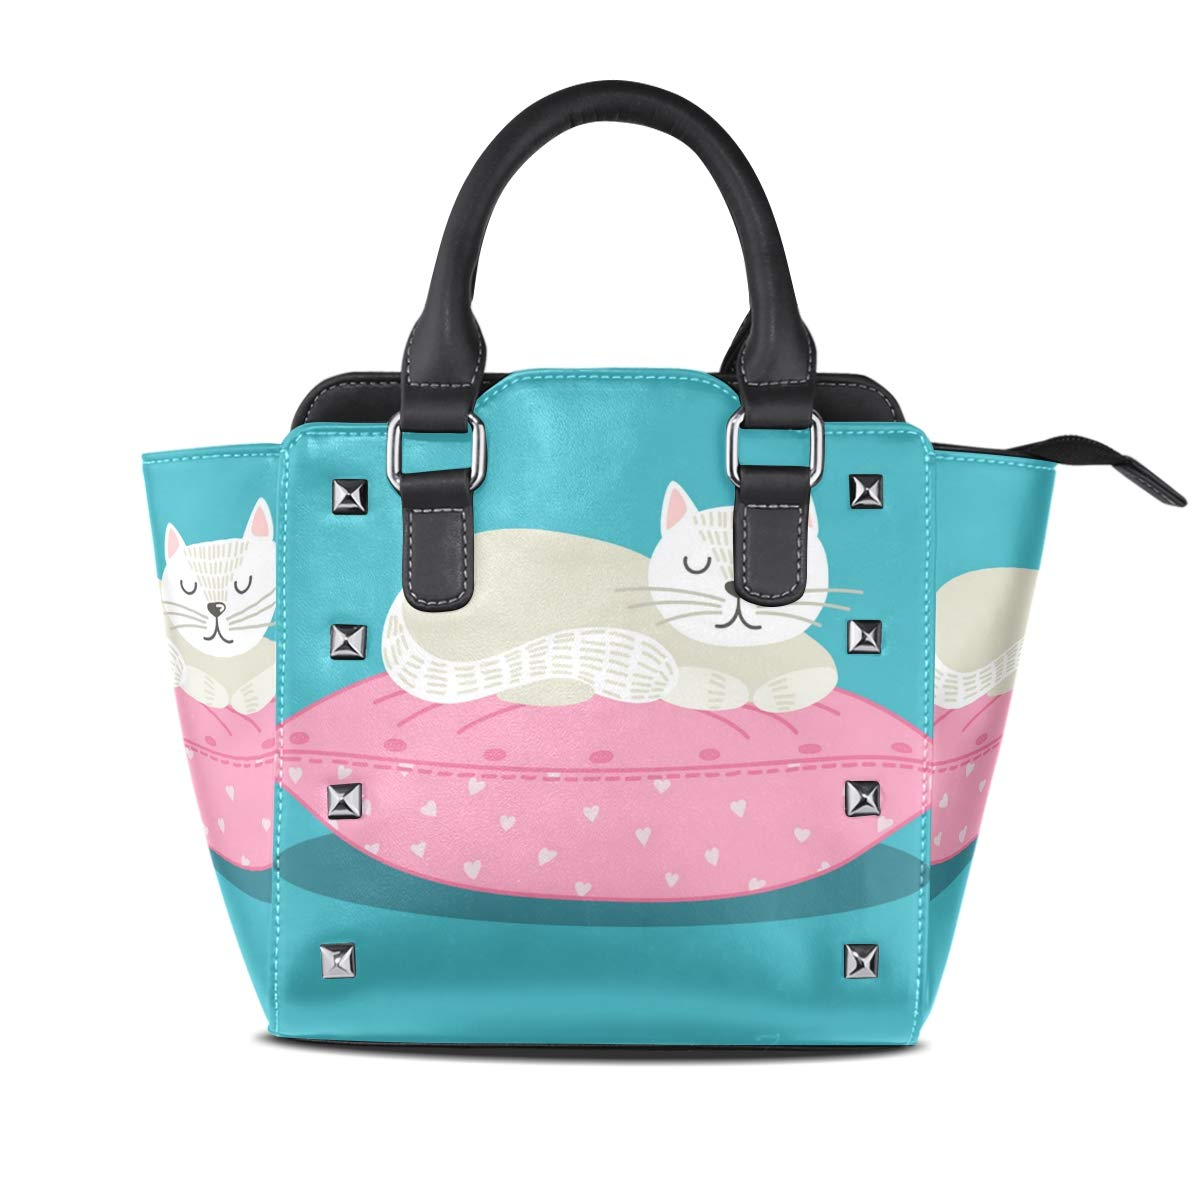 Design2 Handbag Cat Is Playing With Ball Of Yarn Genuine Leather Tote Rivet Bag Shoulder Strap Top Handle Women